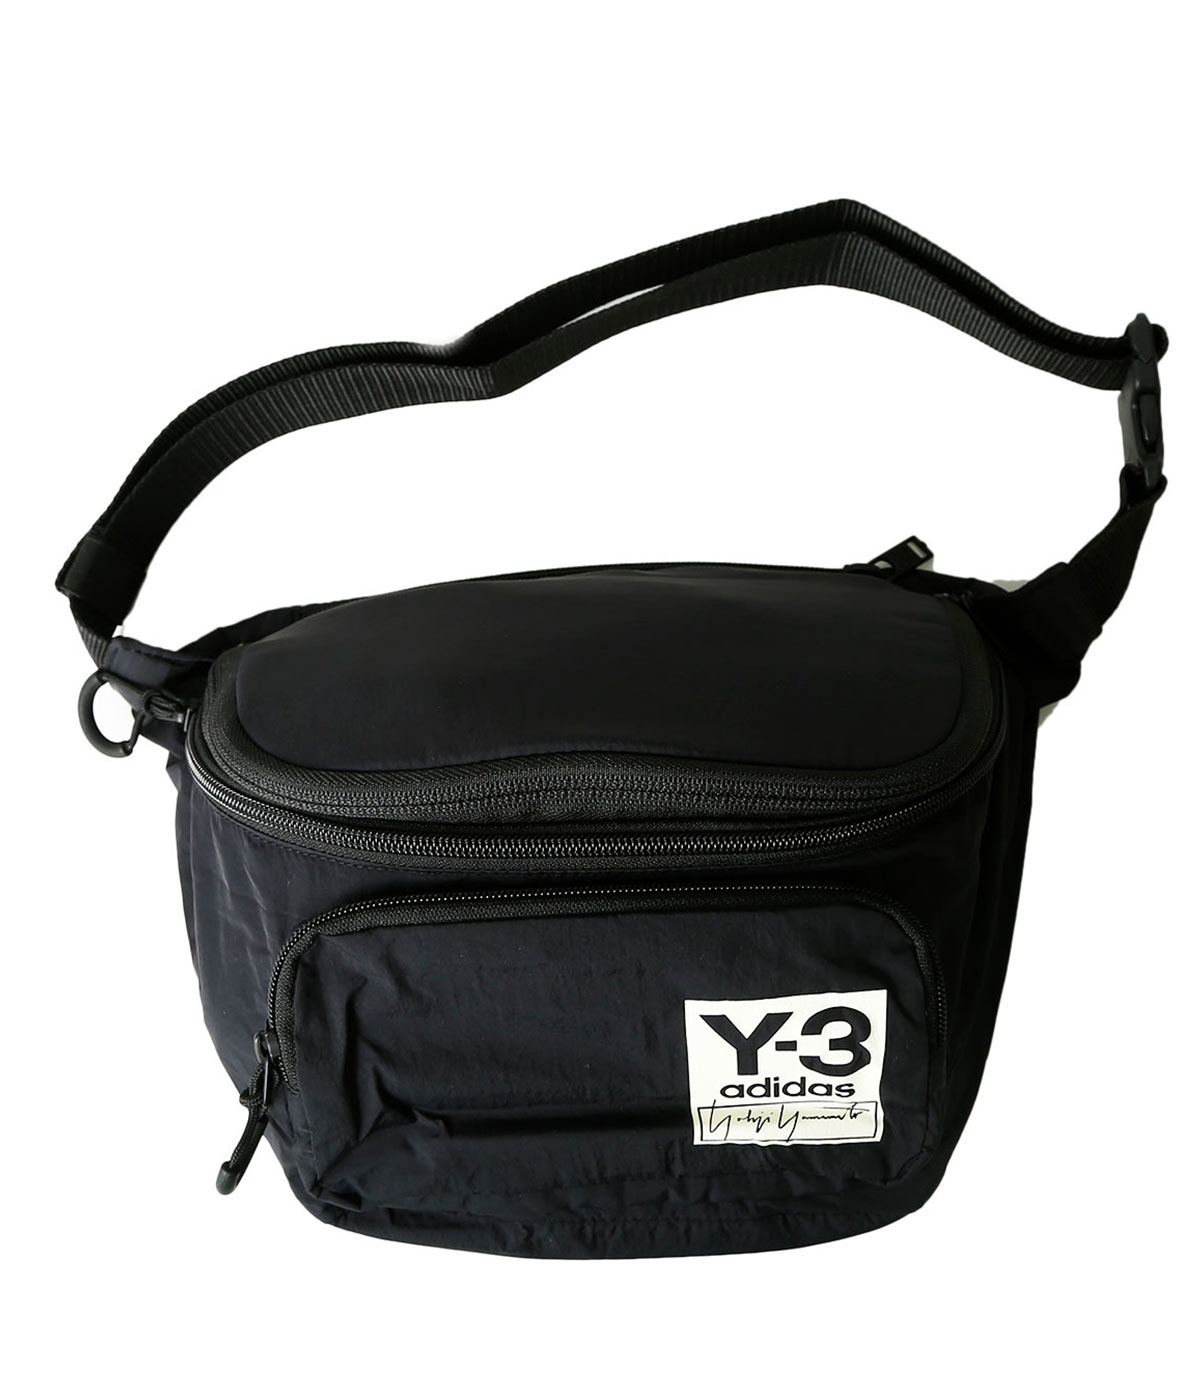 Y-3 PACKABLE BP